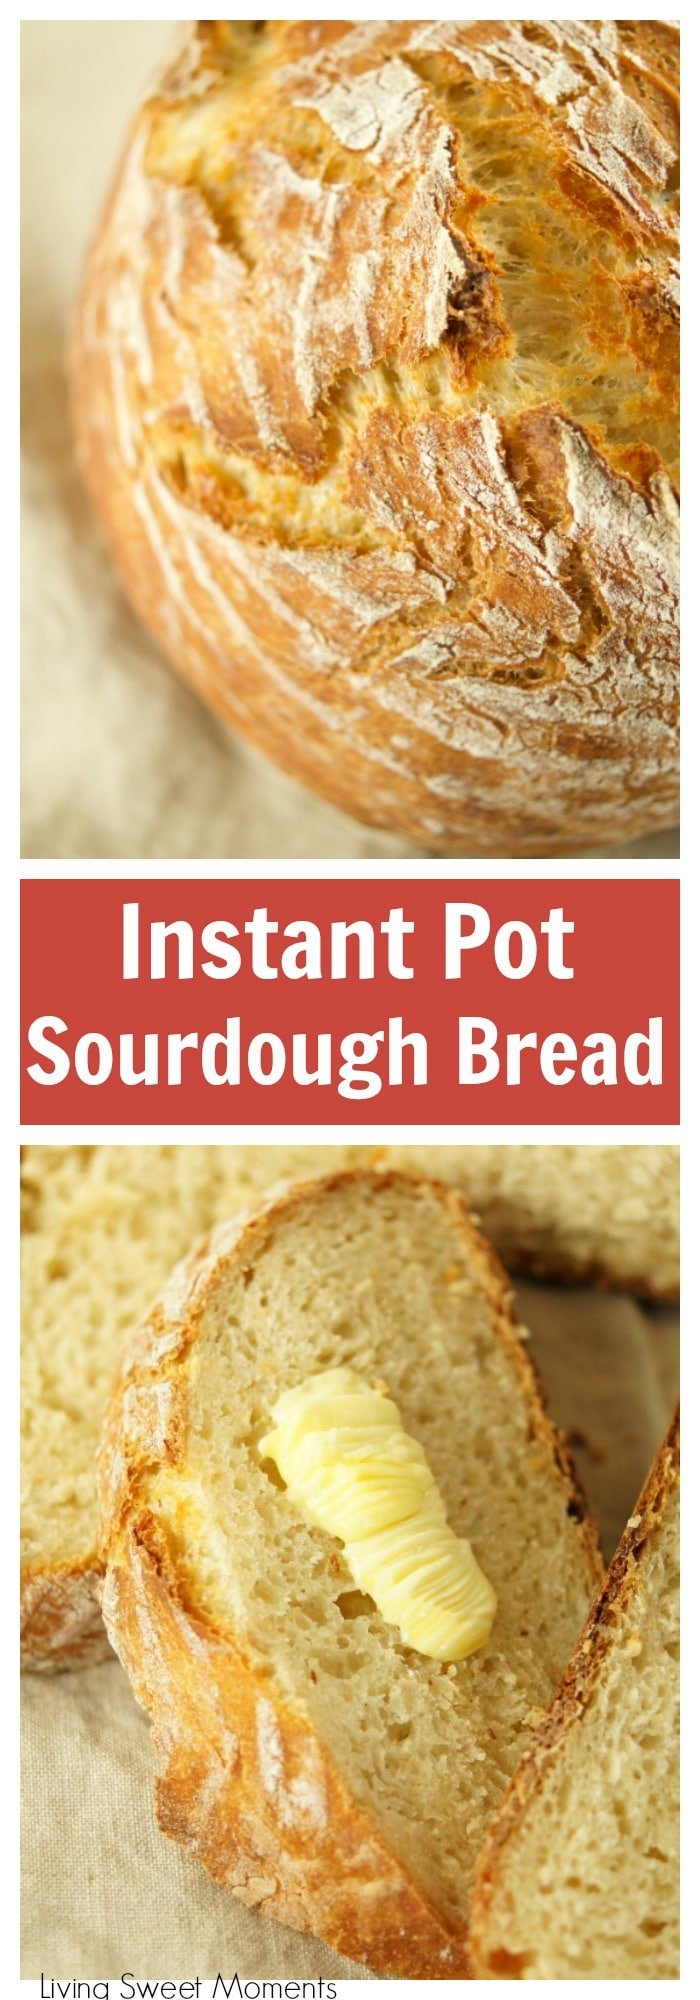 This crusty and delicious Instant Pot Sourdough Bread is made with yogurt and is ready in less than 6 hours from start to finish. Ideal by itself or for sandwiches as well. More instant pot recipes at livingsweetmoments.com